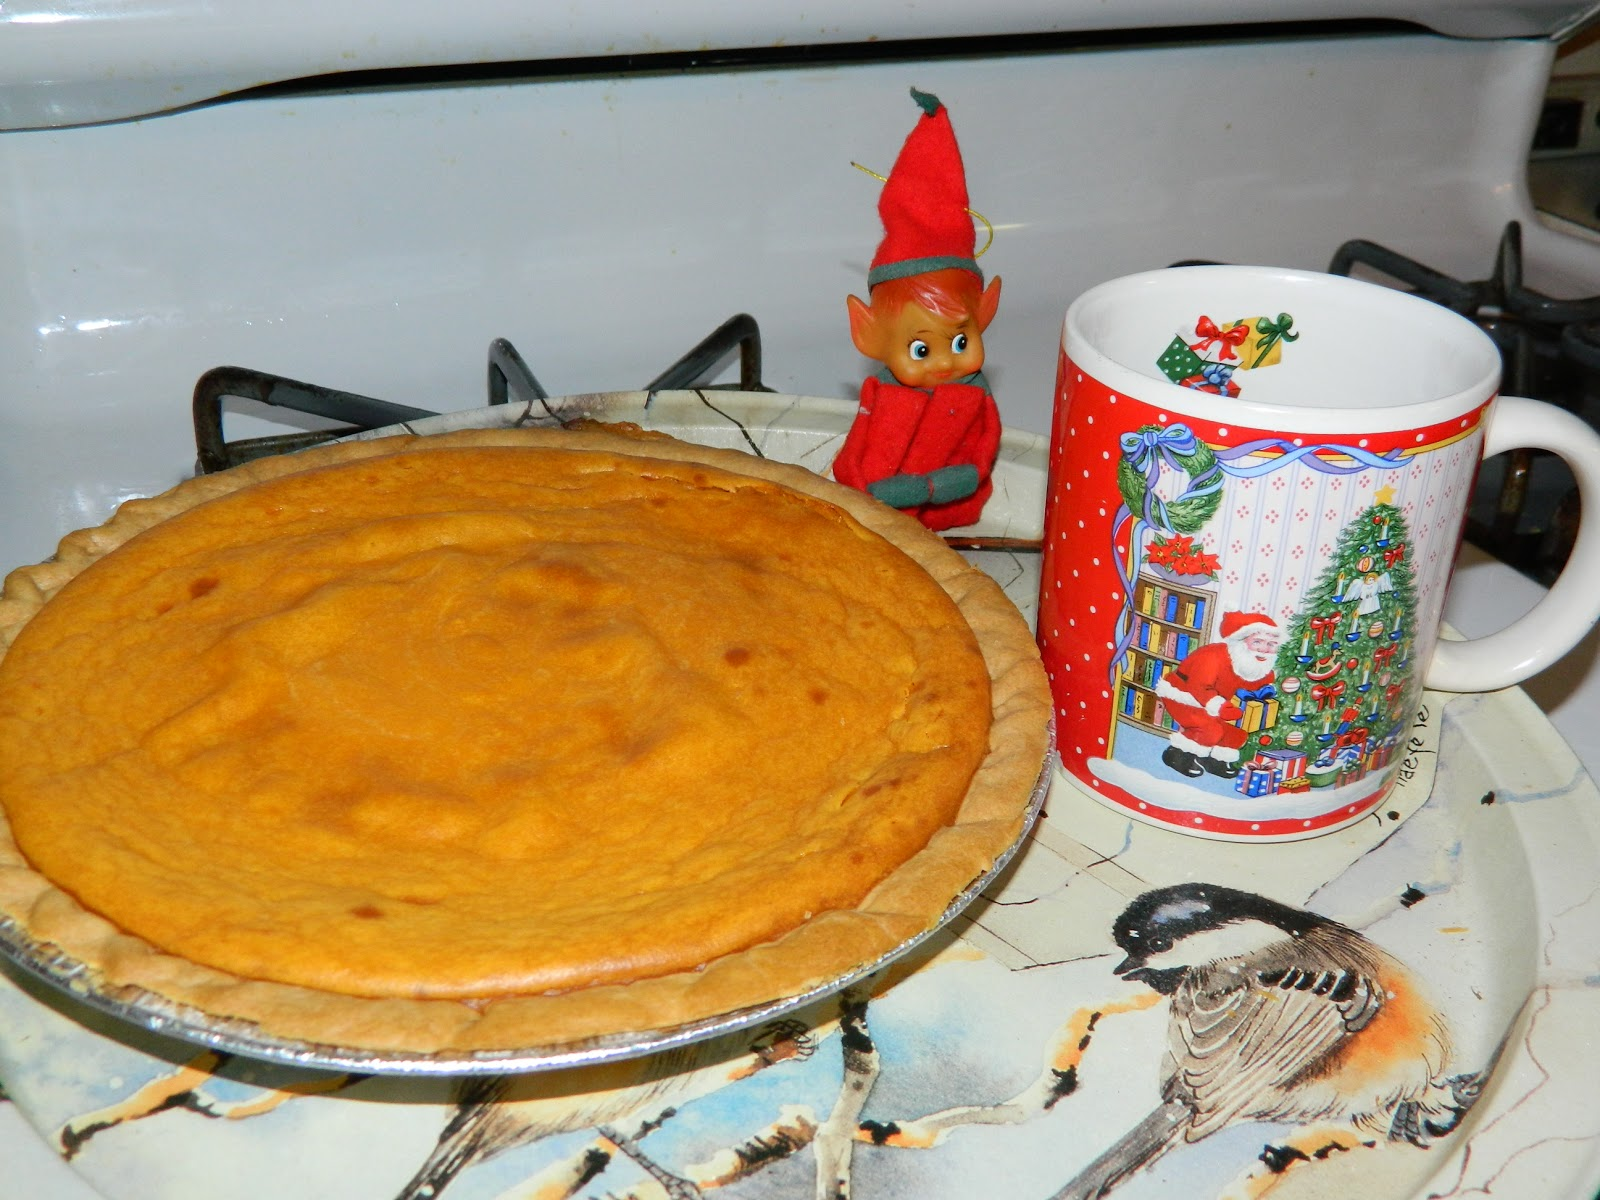 Sweet potato pie recipe soul food and above is the pie just